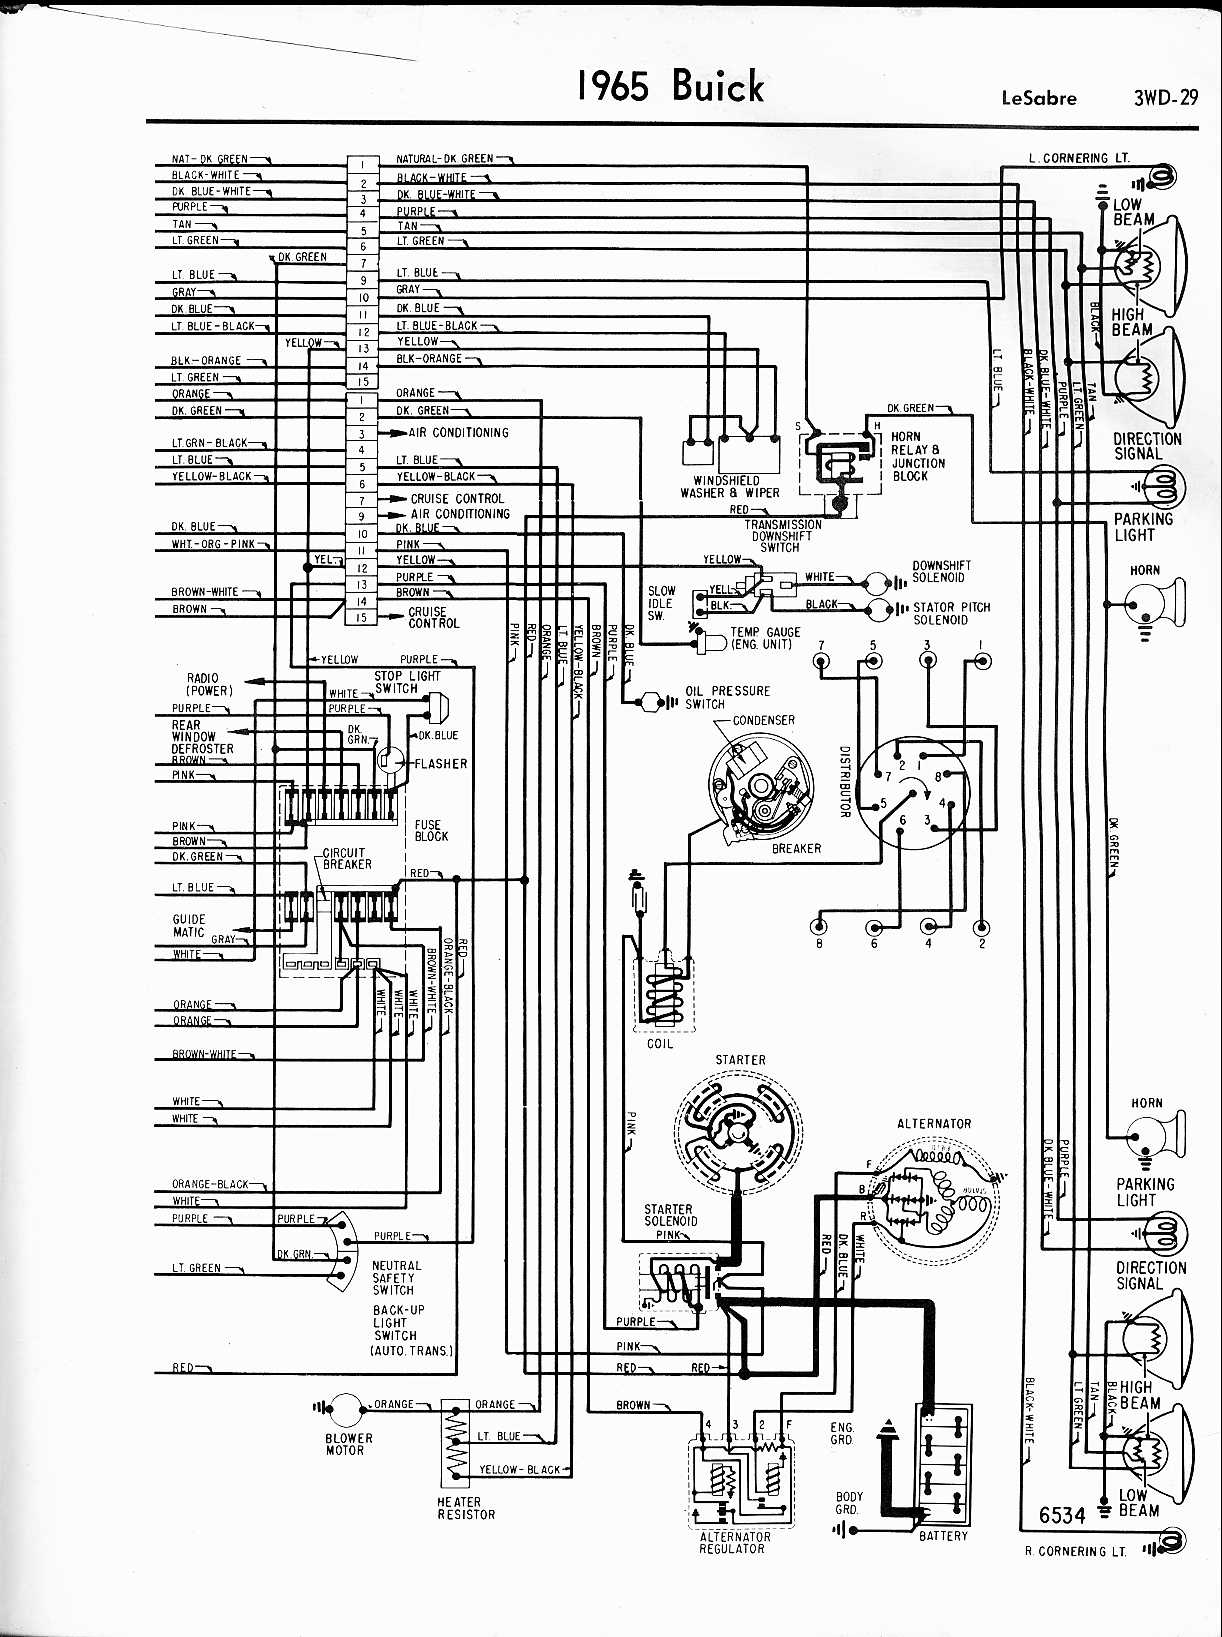 DIAGRAM] 2000 Buick Wiring Diagram FULL Version HD Quality Wiring Diagram -  DIAGRAMVN.MARIOCRIVAROONLUS.ITDiagram Database